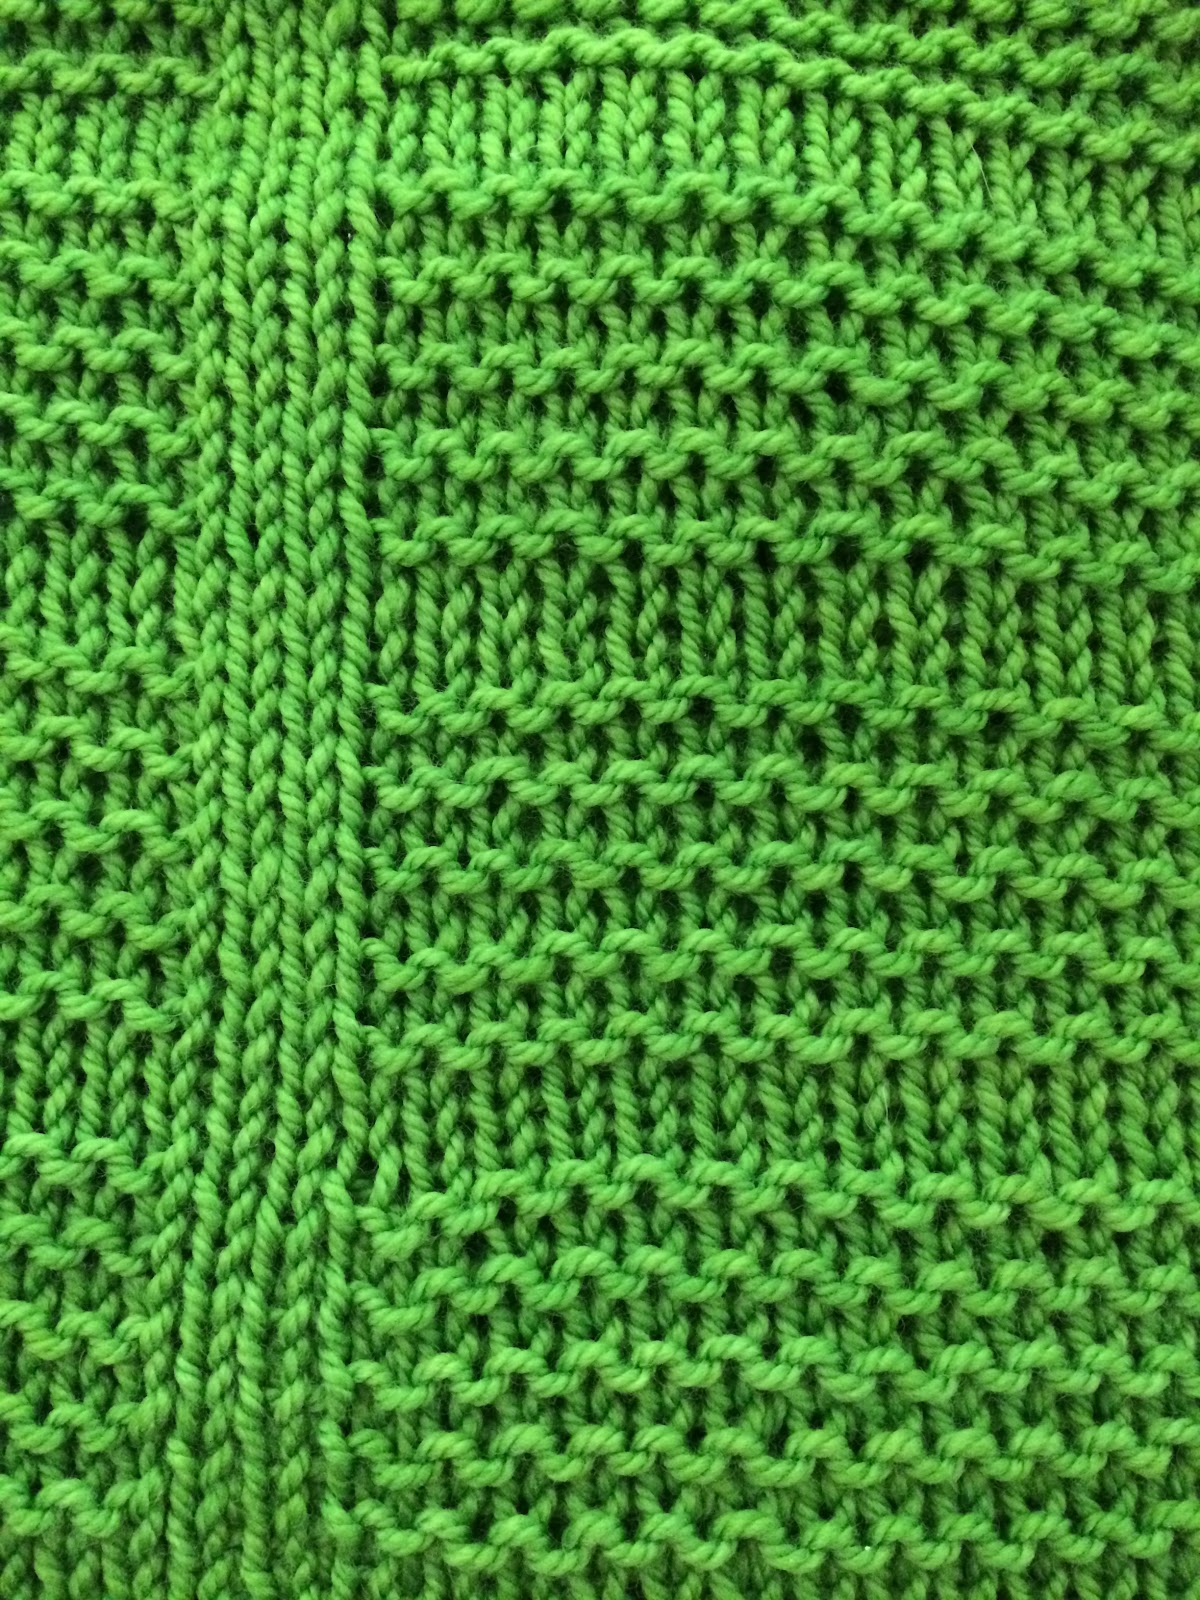 Close up view of a sour apple green knit cowl with texture designed by Banana Moon Studio. Free with subscription!